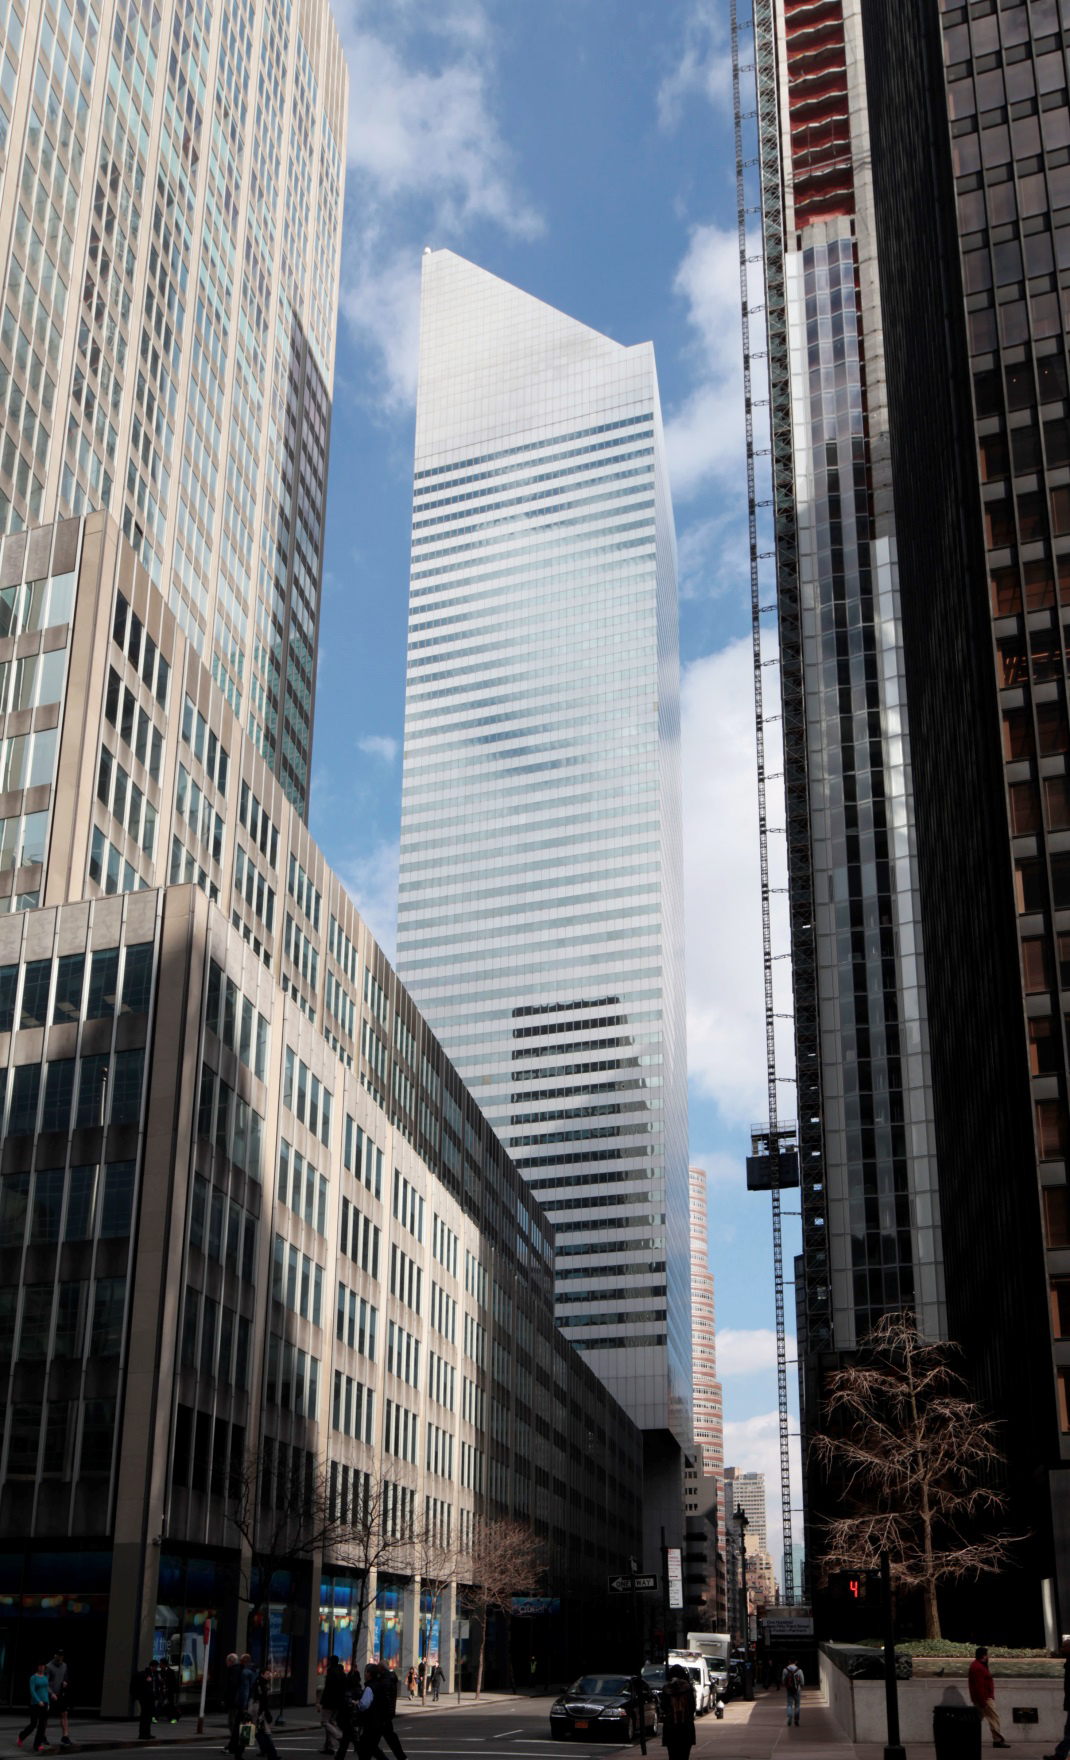 The former Citicorp Center, 601 Lexington Avenue, as seen in 2016. LPC photo